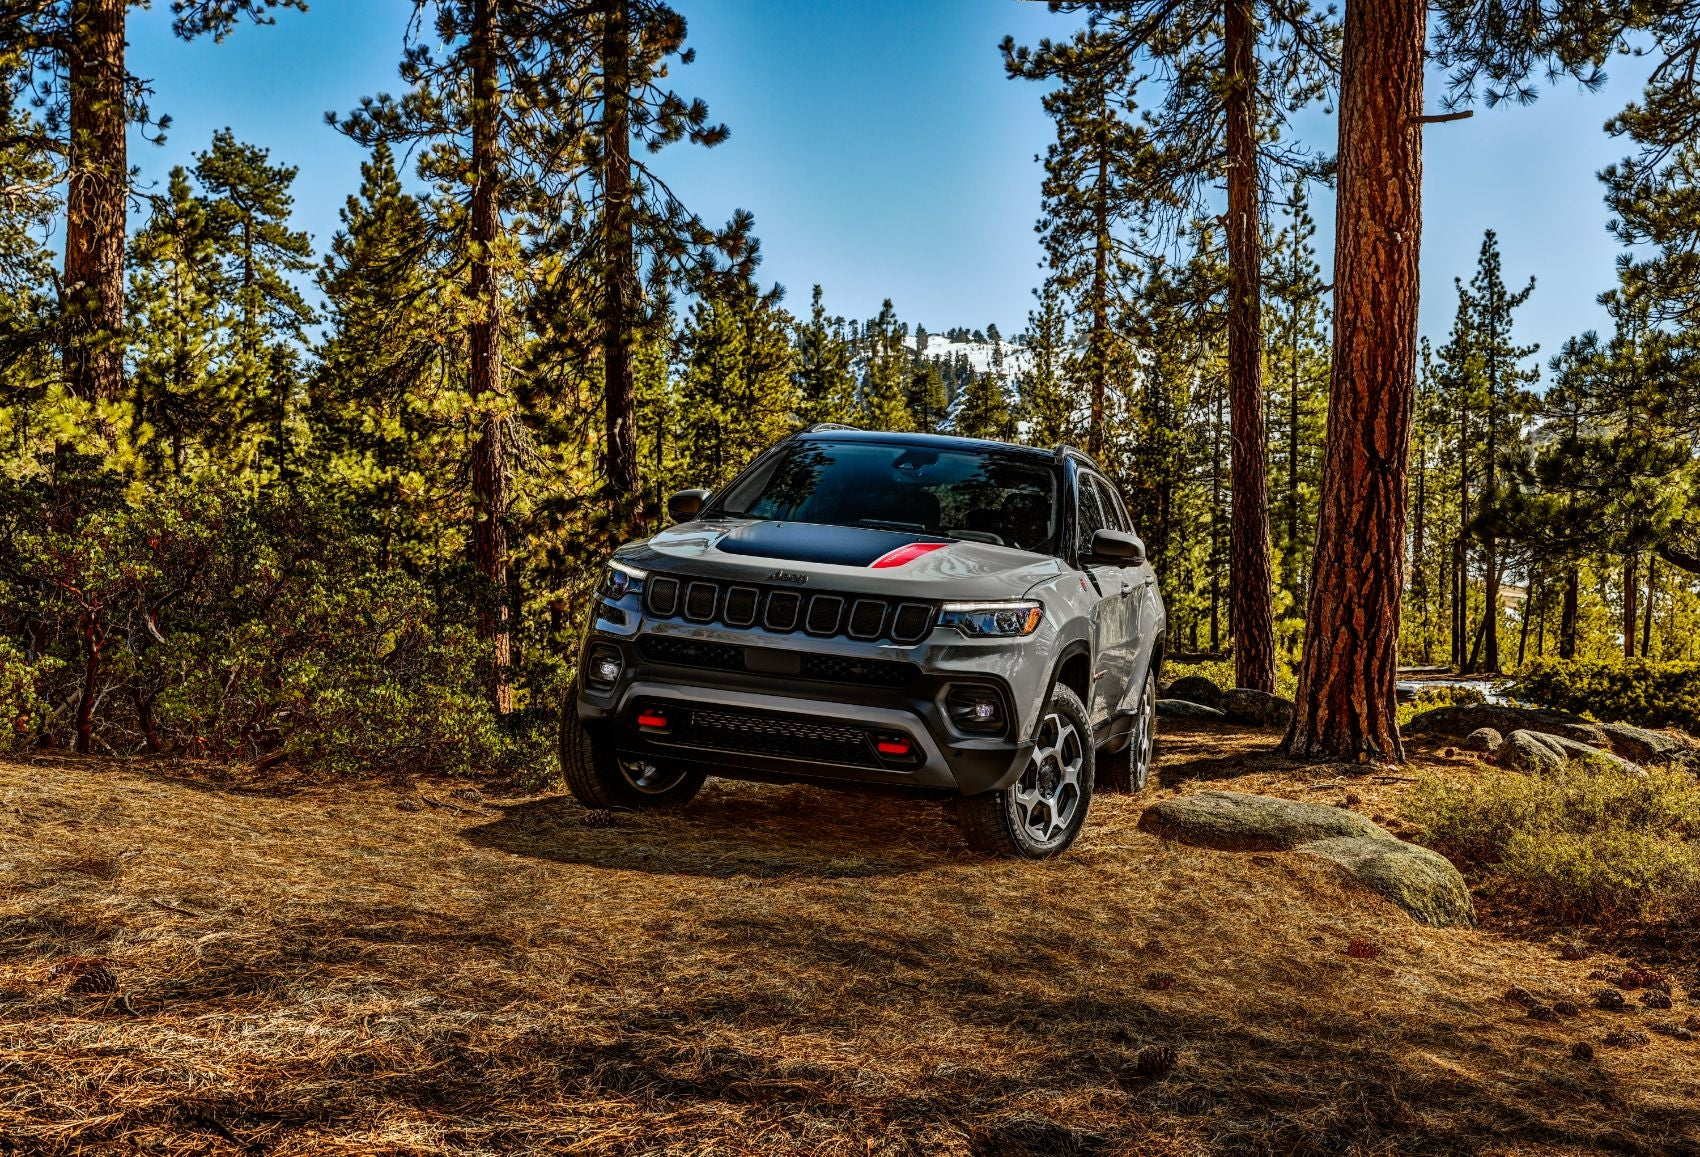 2022 Jeep Compass: Performance Specs, Trim Levels, Pricing & More